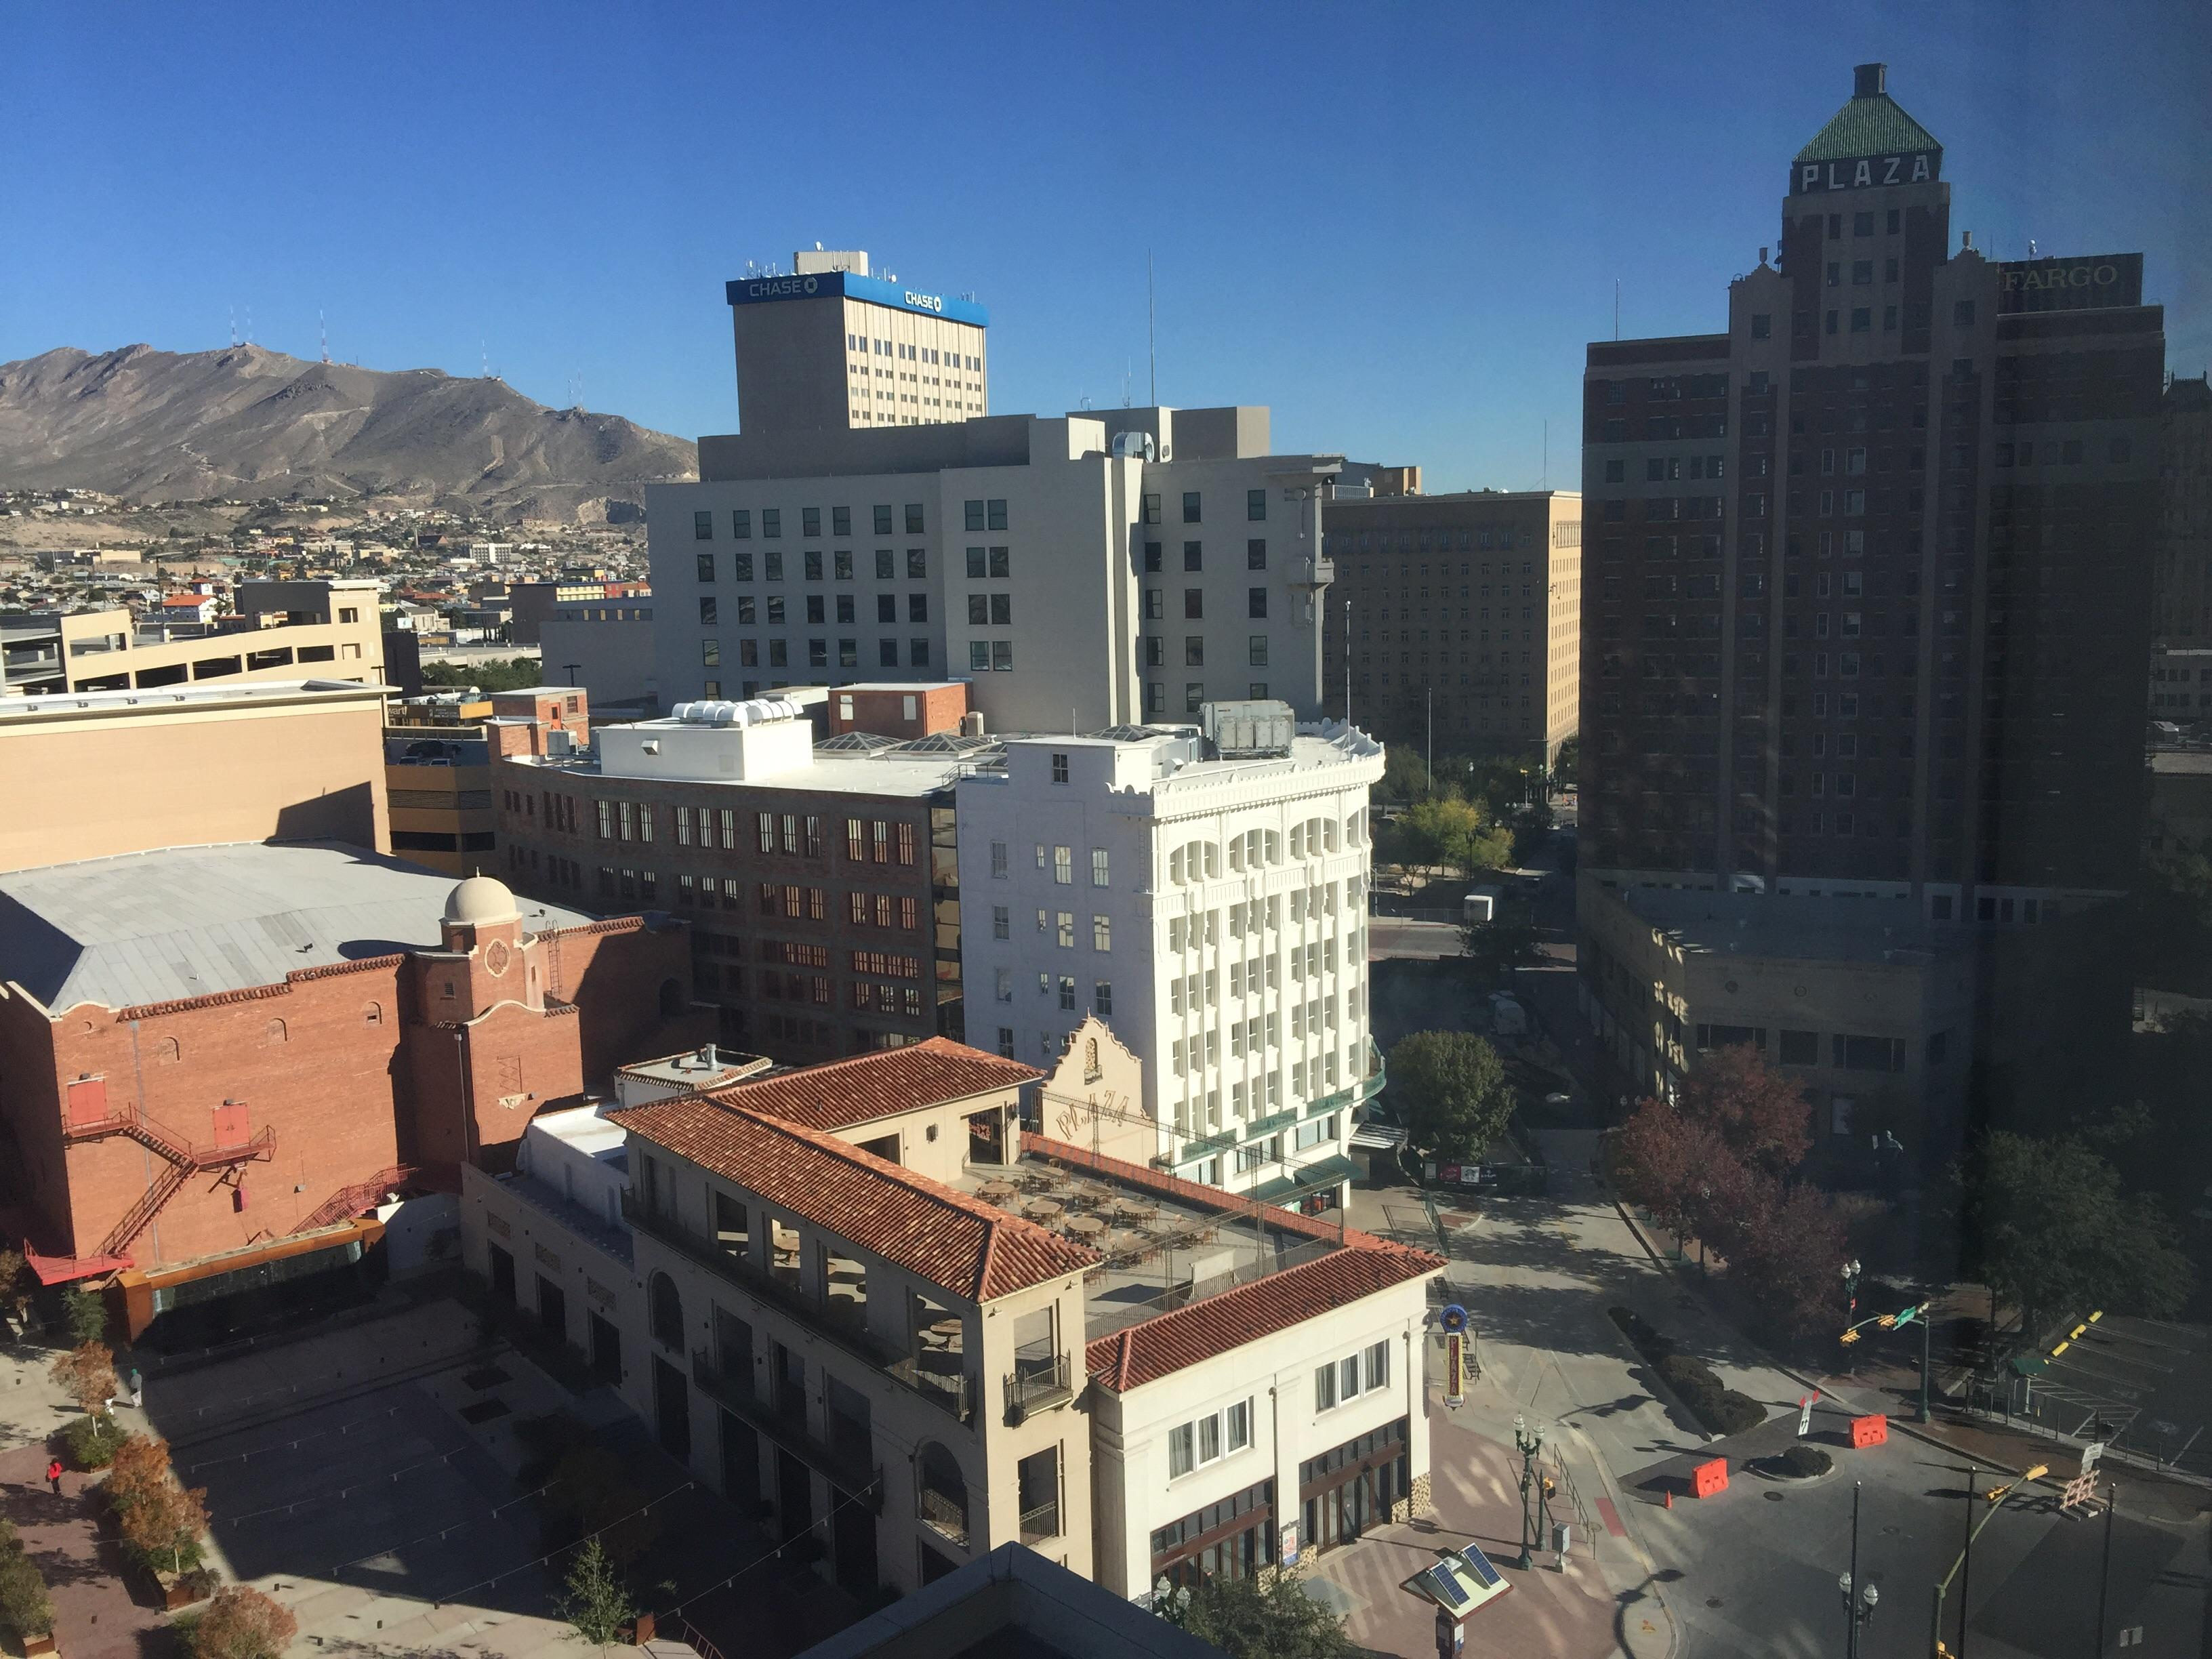 Franklin Mountains, Mills Building, and Plaza Theatre from the Camino Real Hotel in El Pas